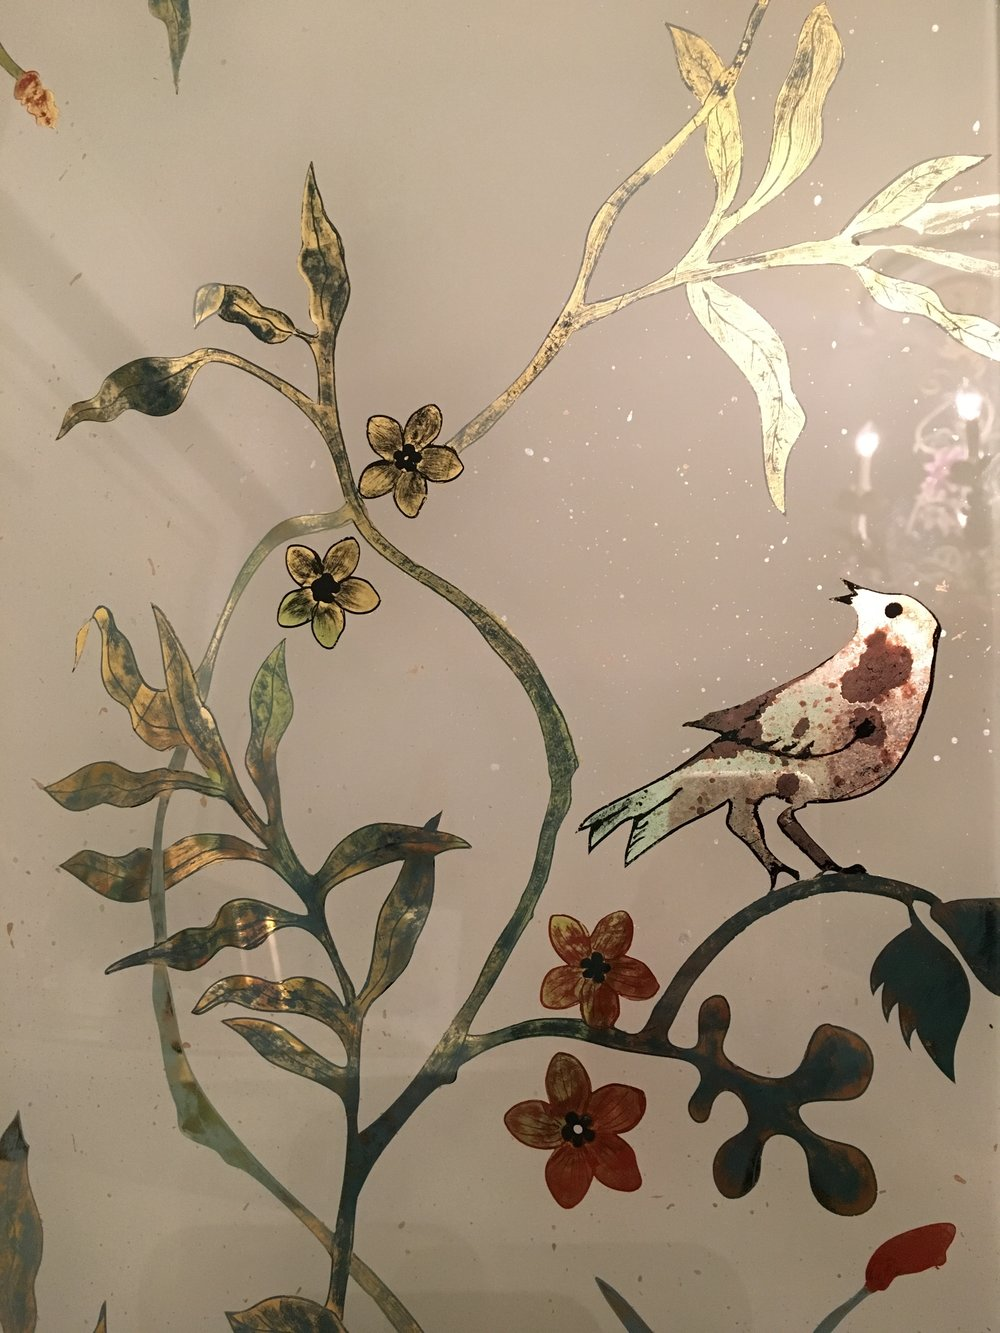 Verre eglomisé sample for a backsplash project.   Water gilded with 22k yellow gold and hand painting.